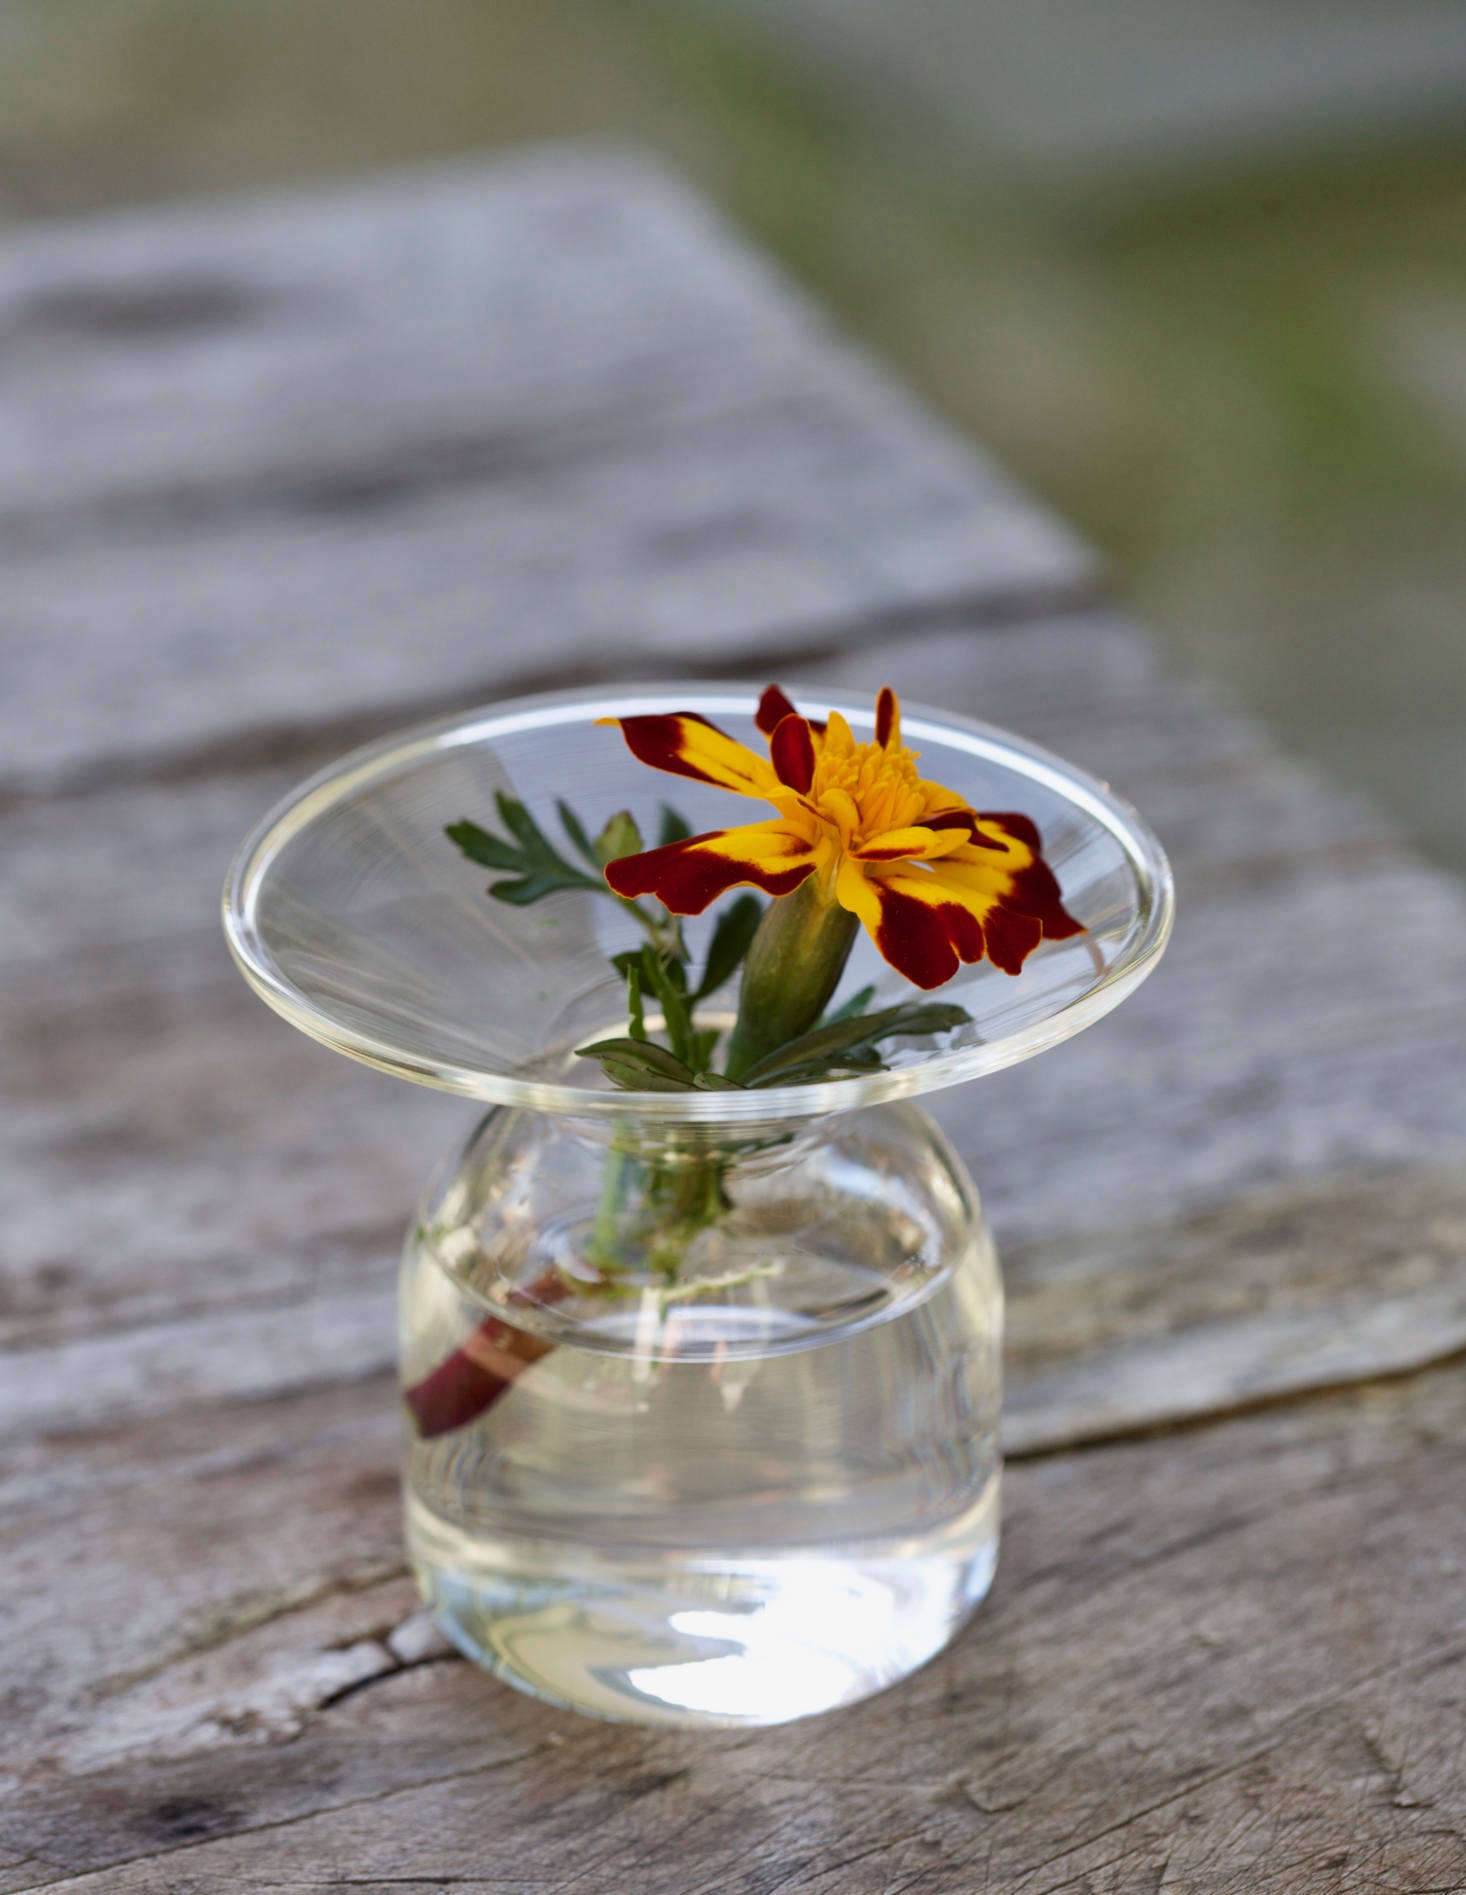 The bright colors of the marigold won't look garish if you arrange stems singly in small bud vases.